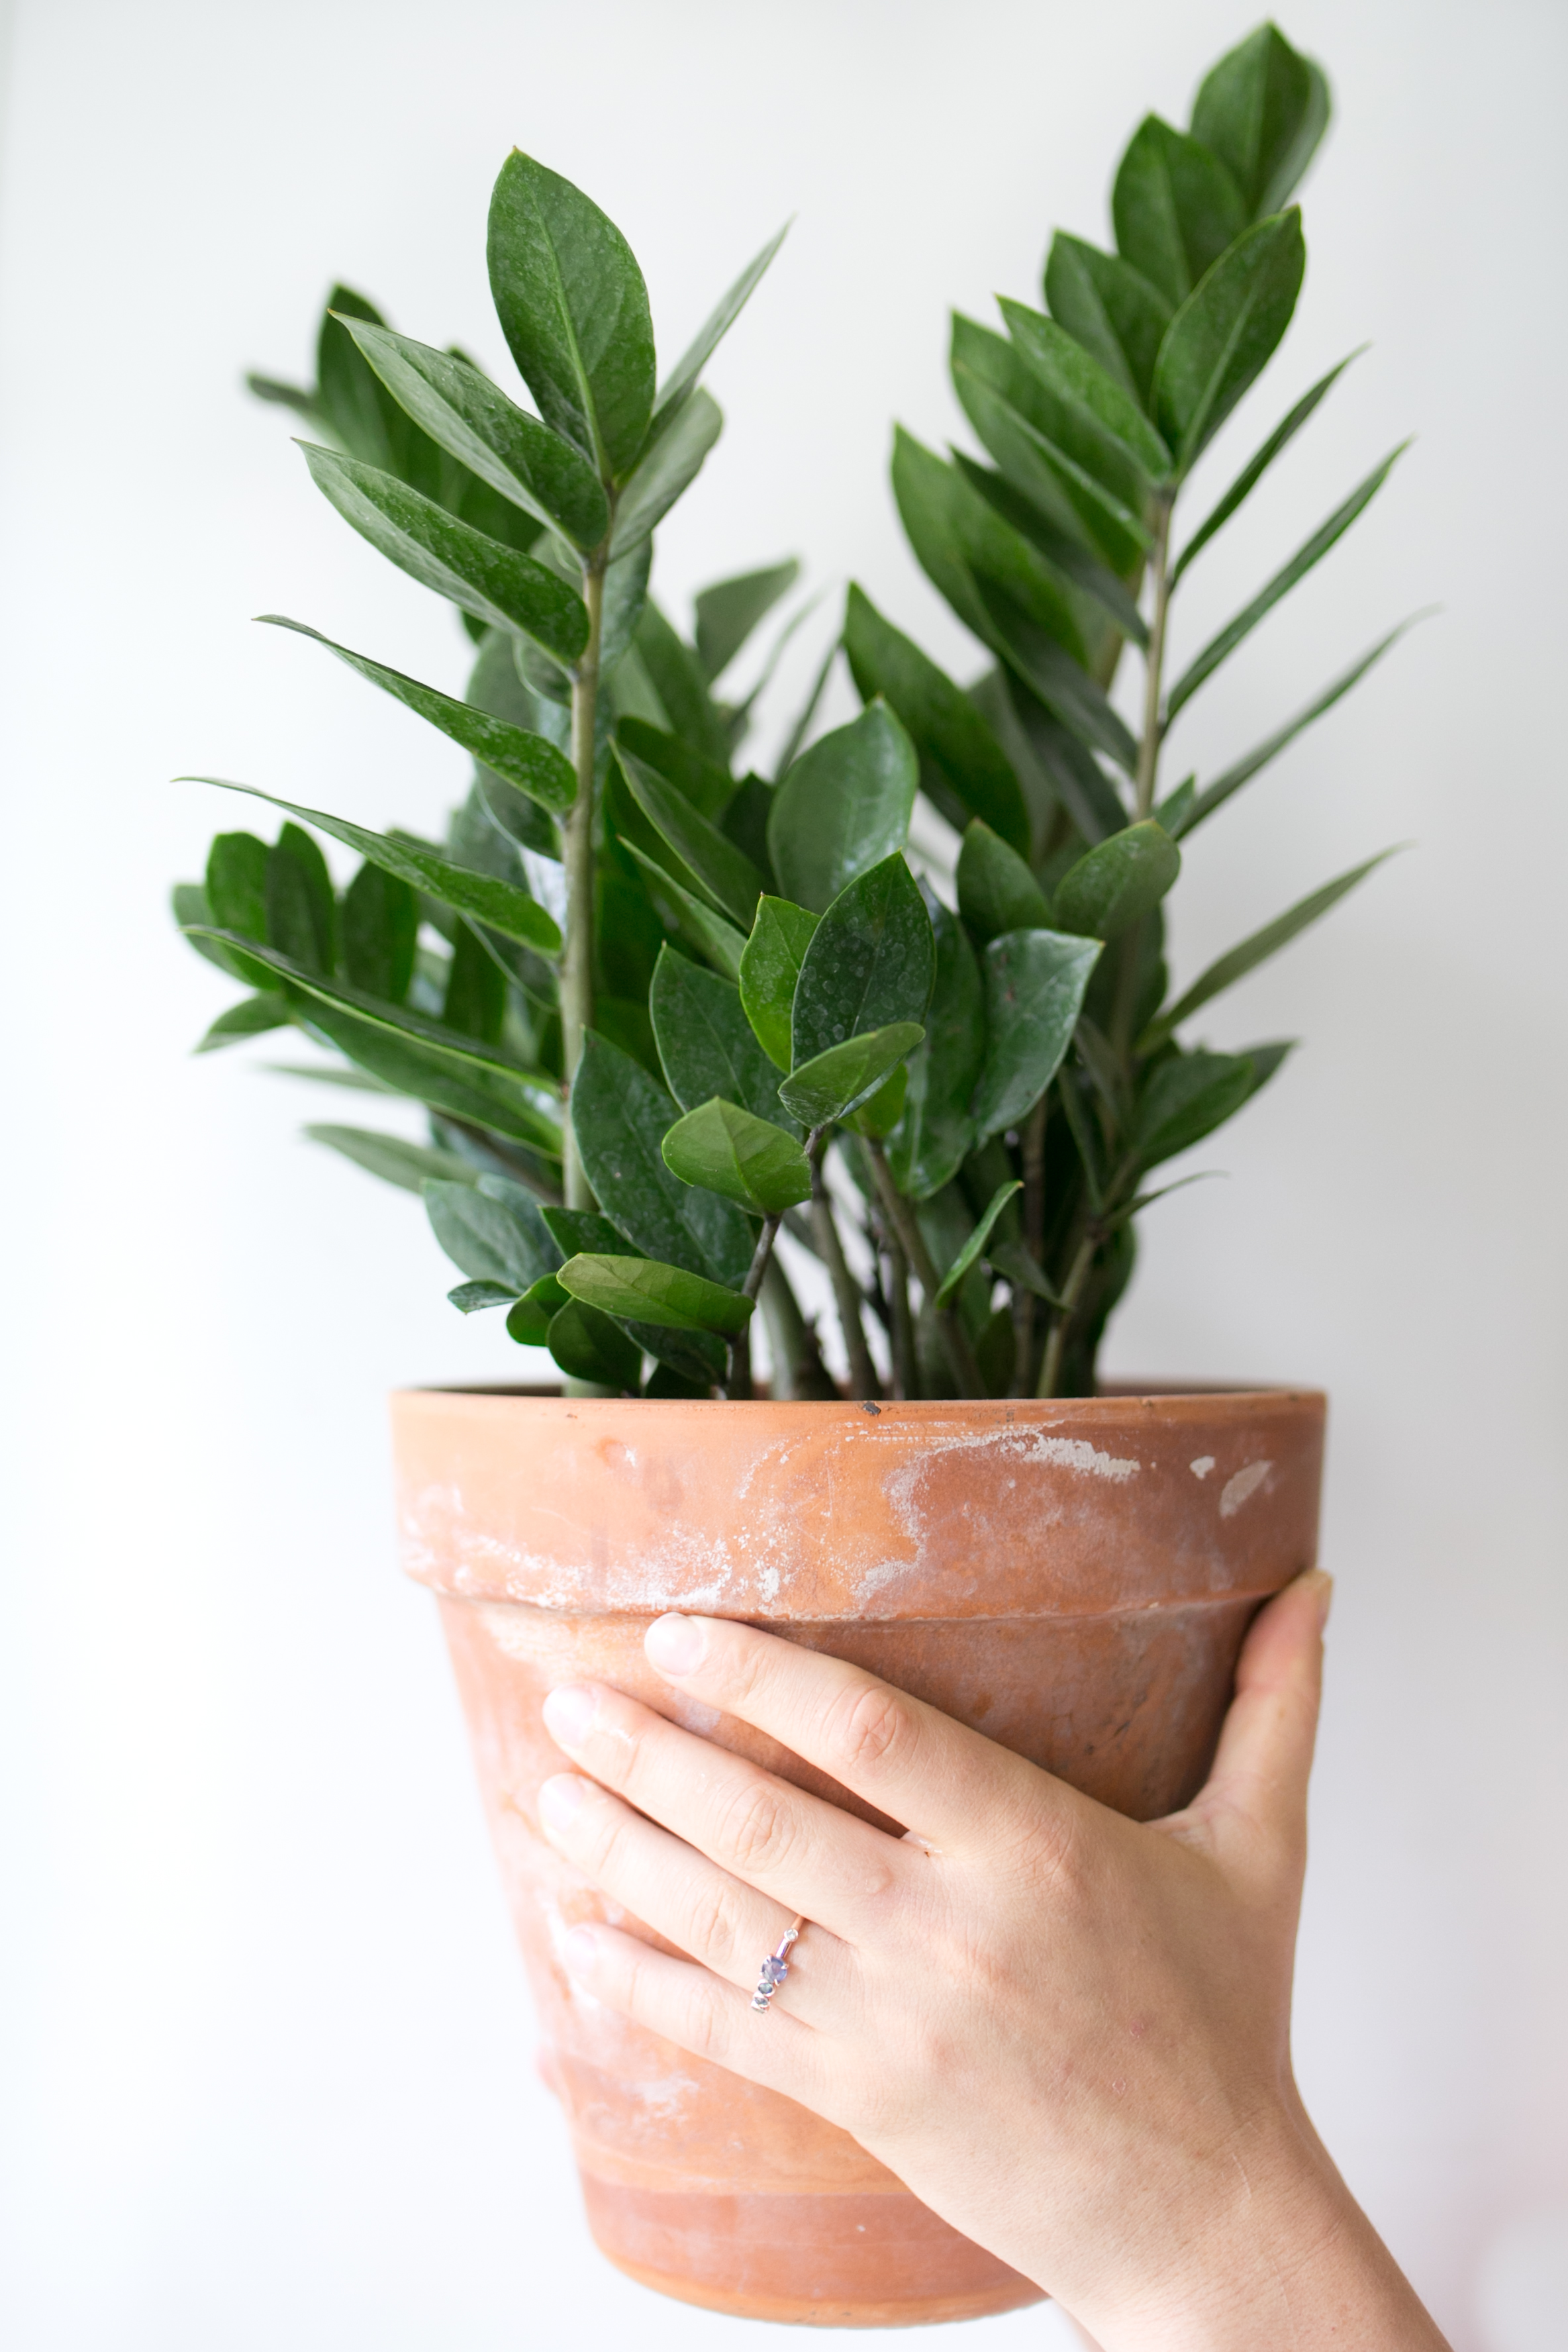 The white and gray crust on this pot can be a warning sign the plant is not getting enough ventilation as it dries between waterings.